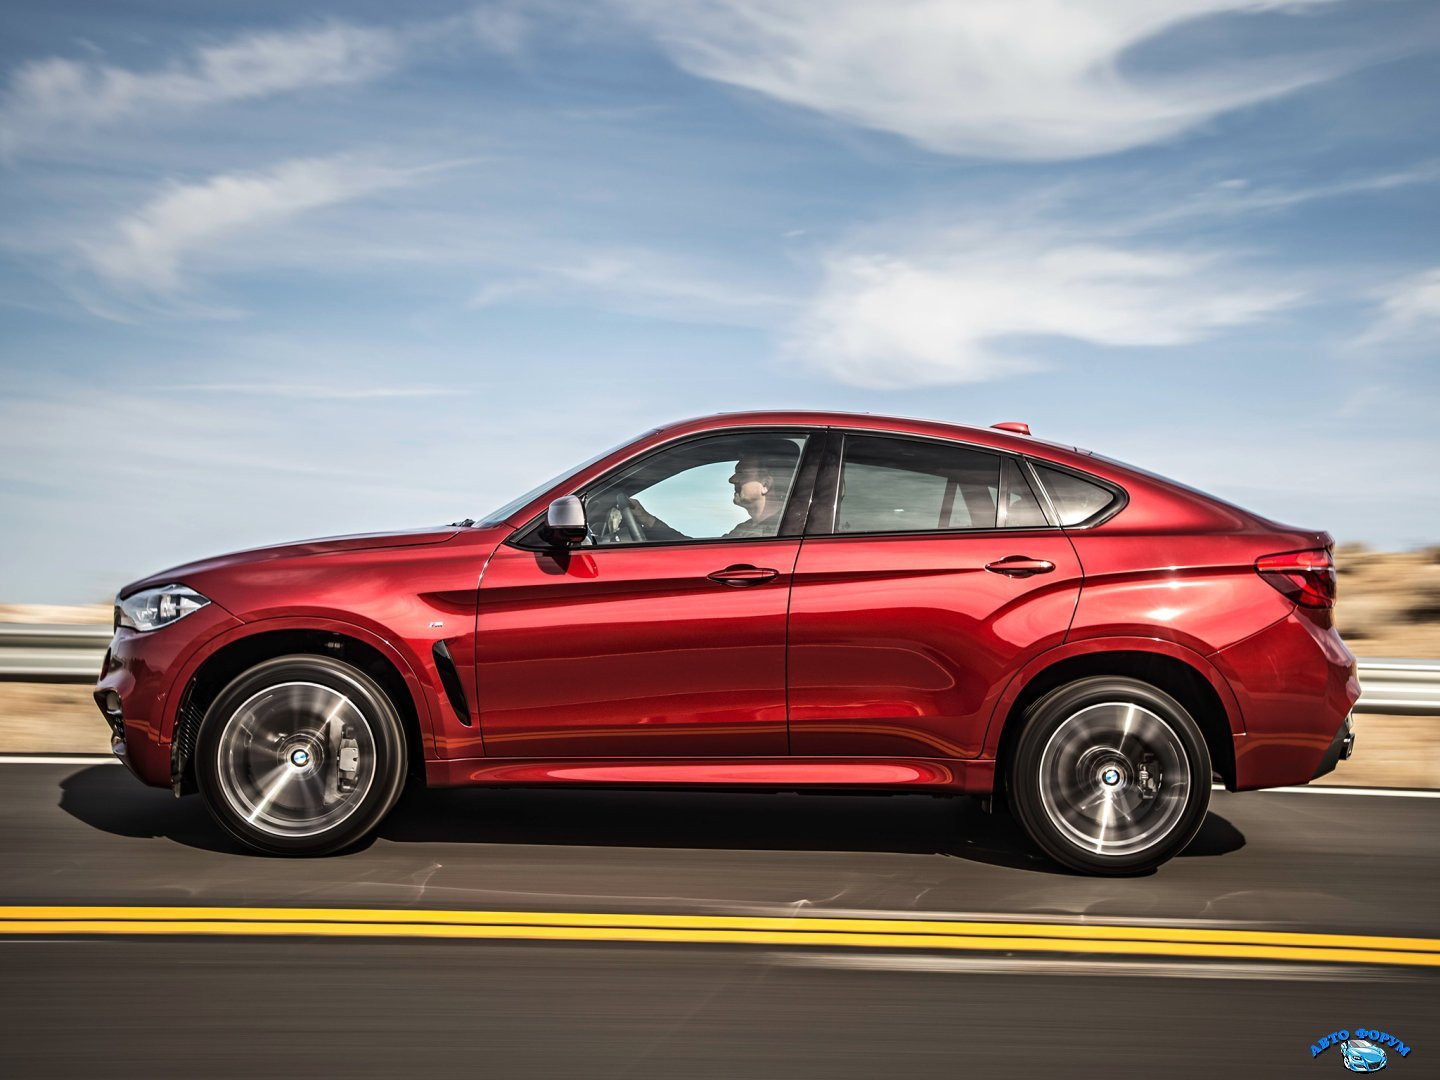 BMW_X6 M_SUV 5 door_2014.jpg